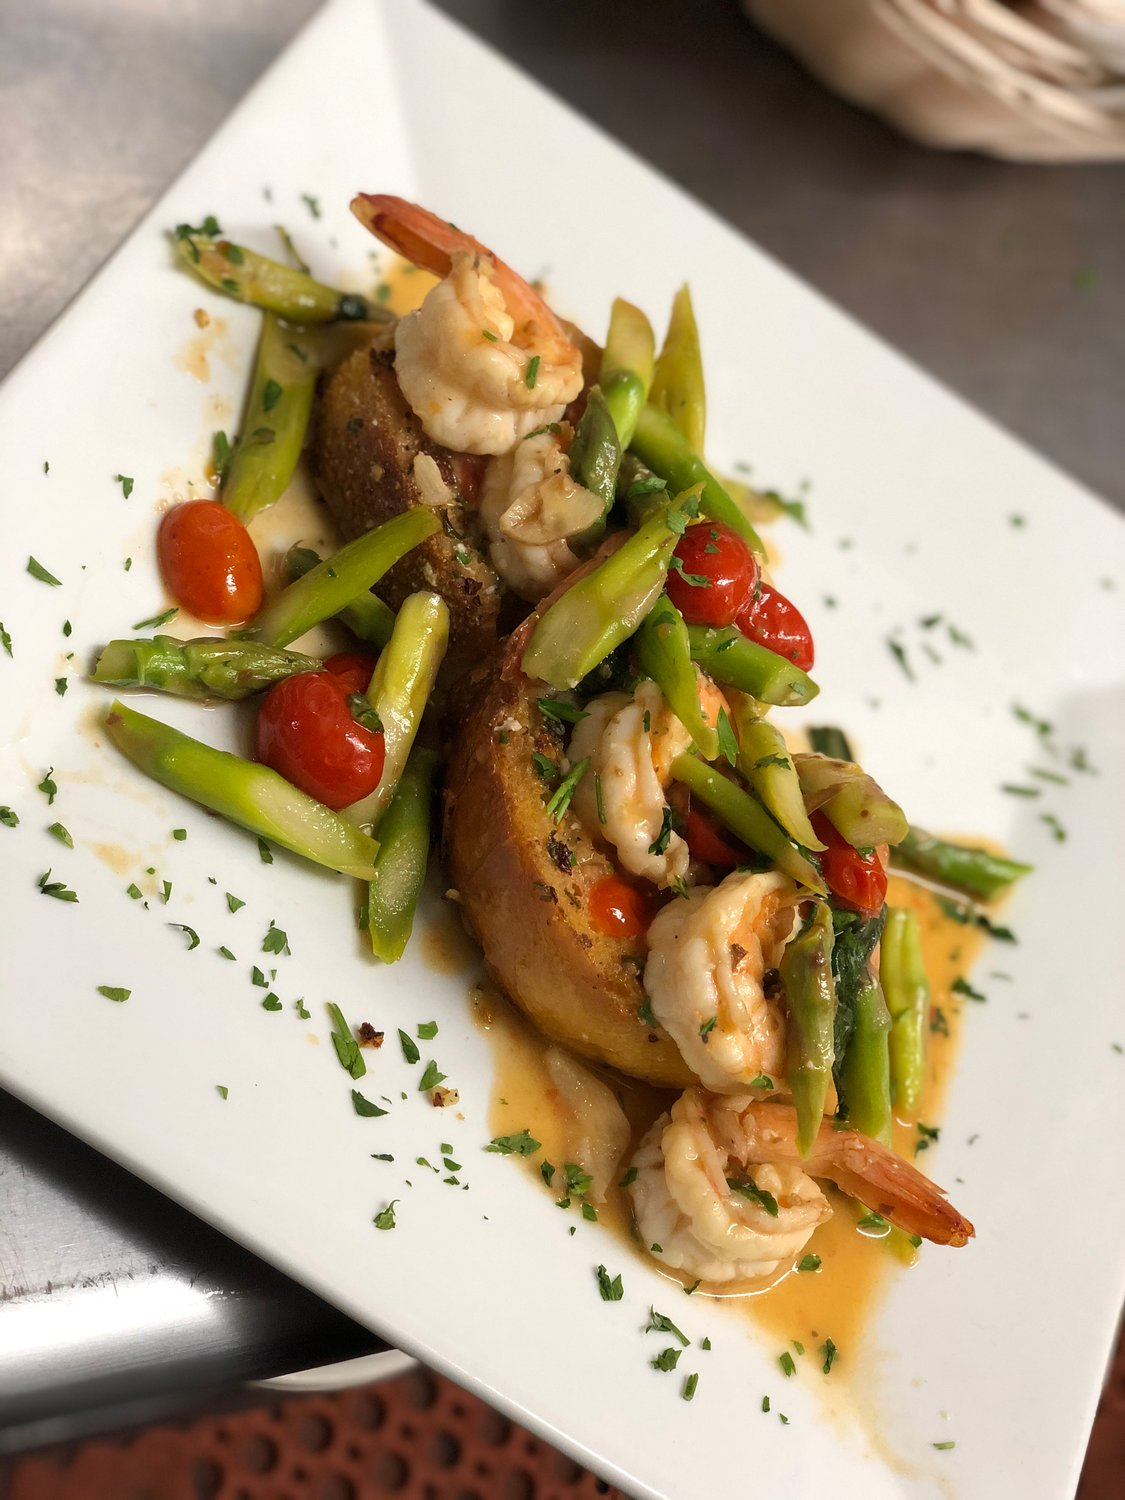 The Italian-American menu features healthier options, as well, including sautéed shrimp and vegetables, pictured, gluten-free pasta and zucchini linguine noodles.